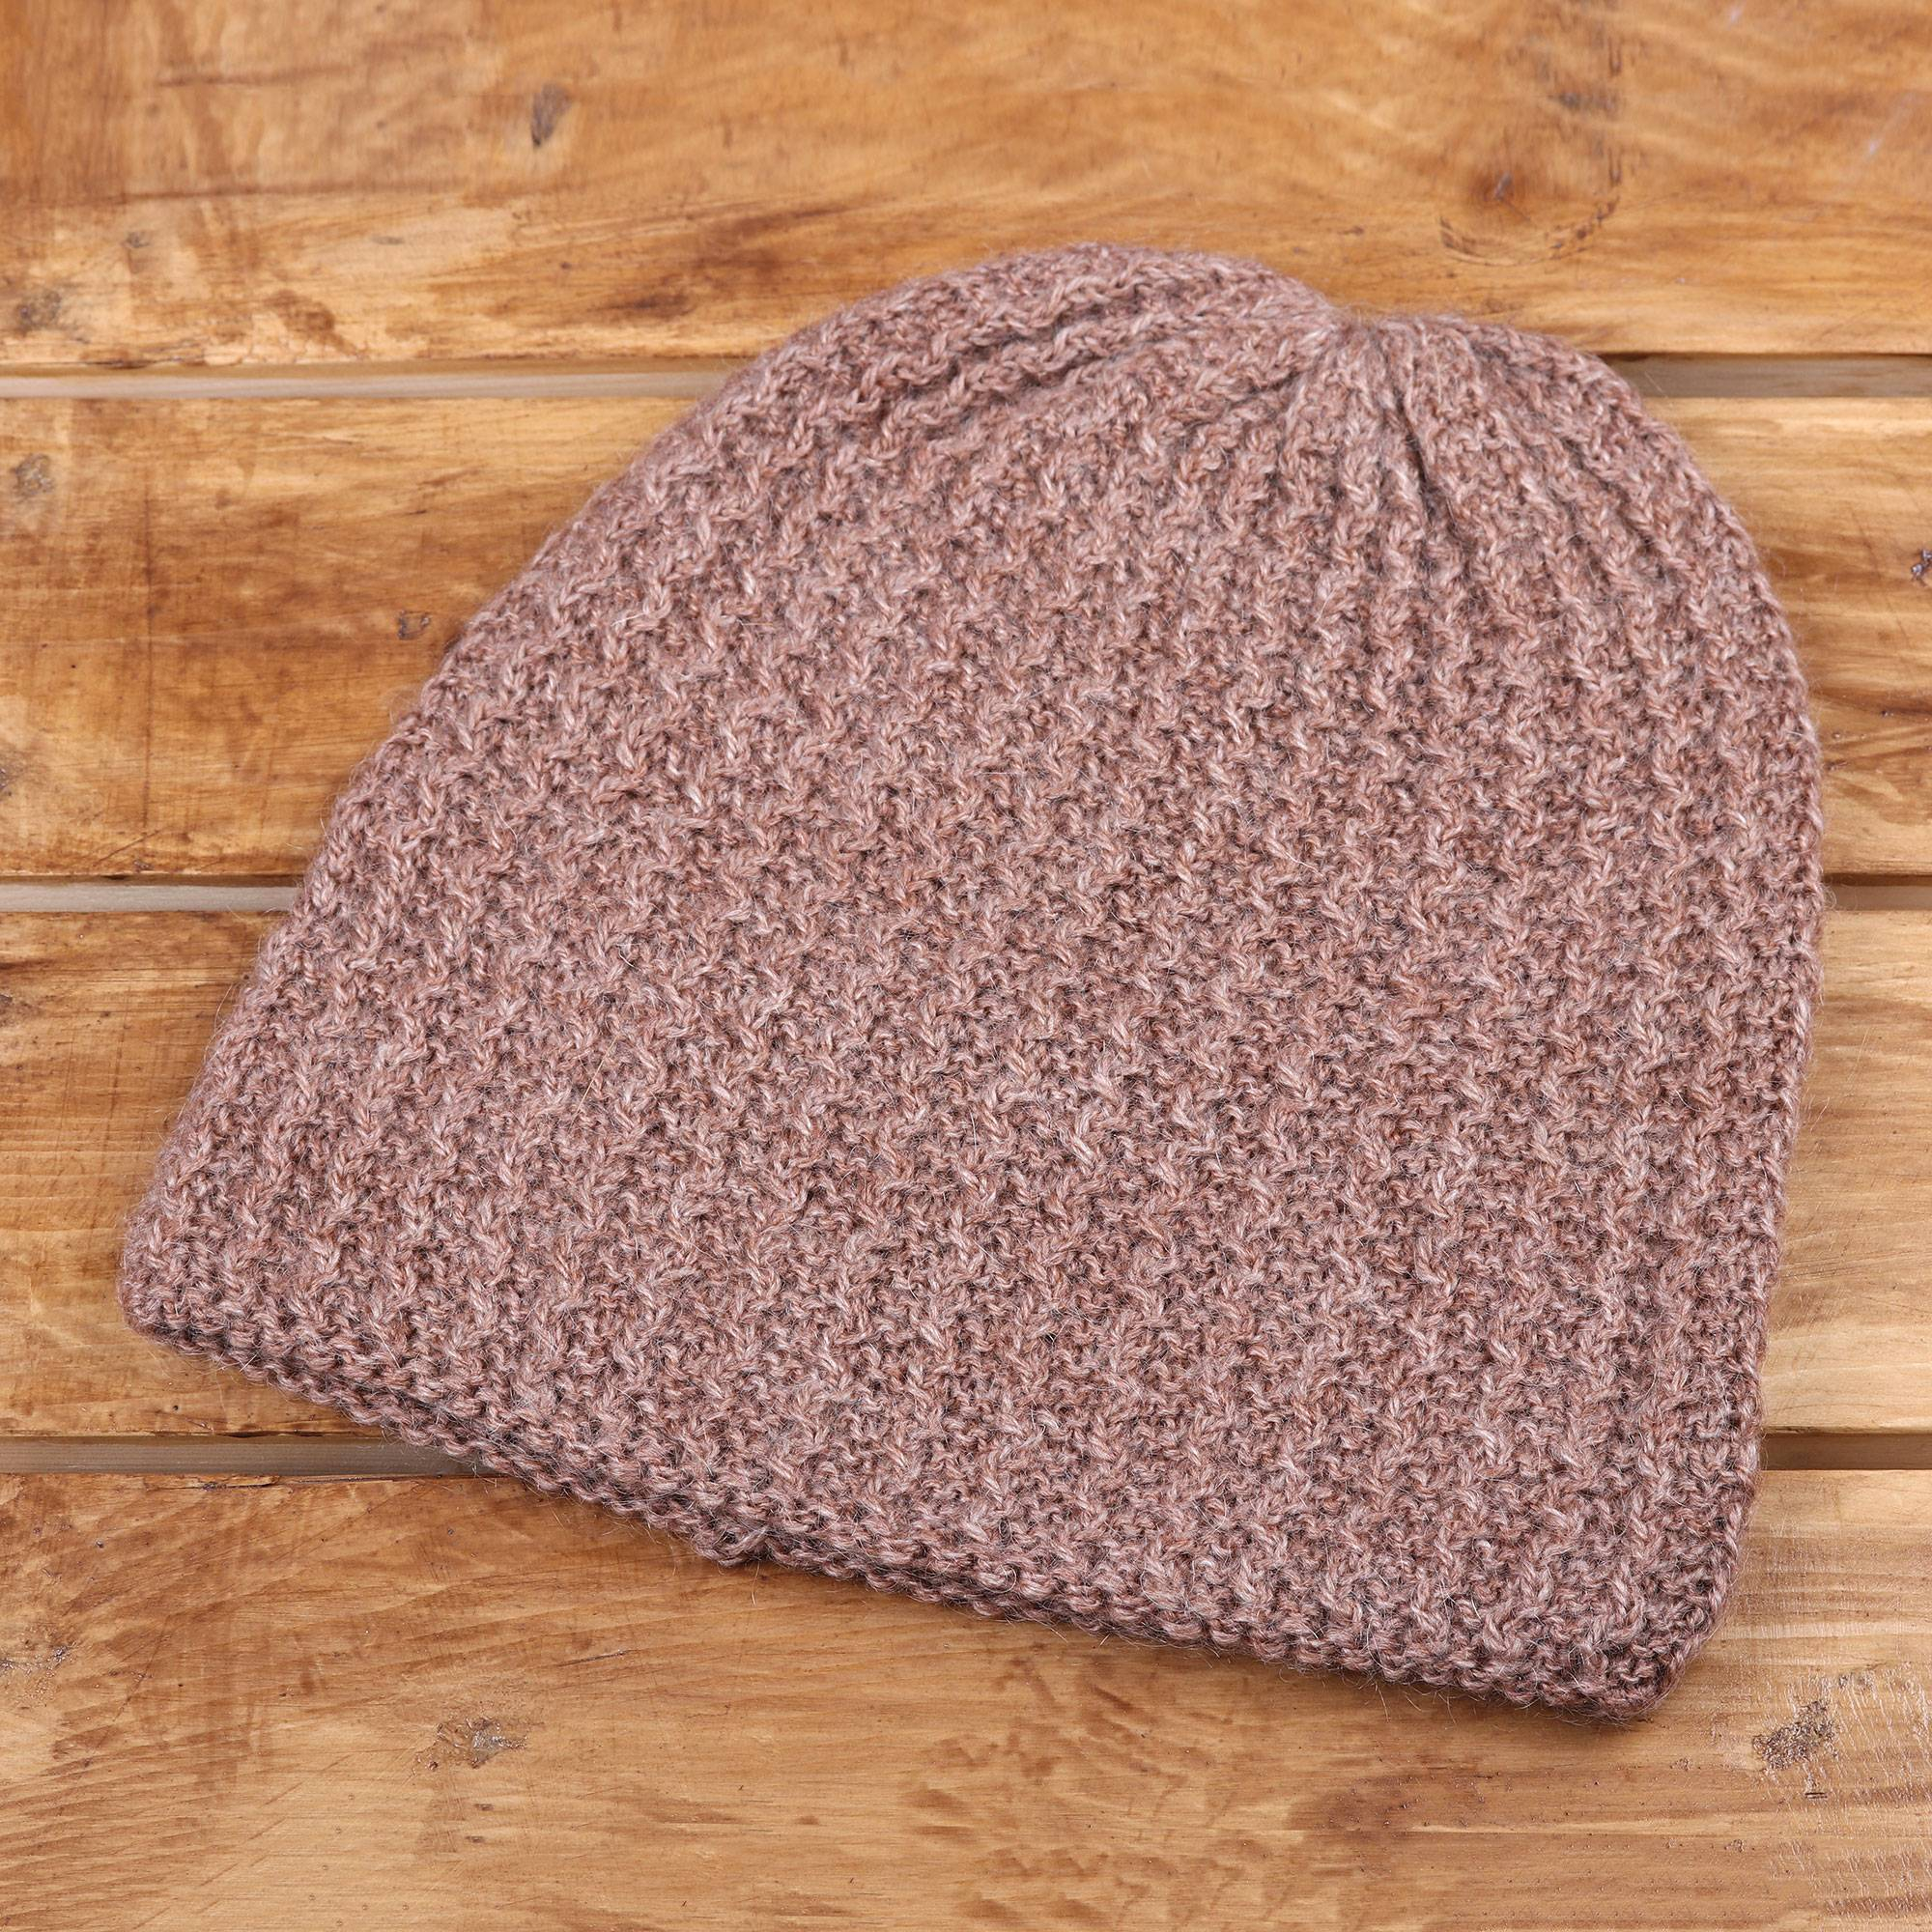 Knit Zig Zag Pattern Rosewood Brown Hand Knit Zig Zag Ribbed Wool Blend Hat Himalayan Waves Rosewood